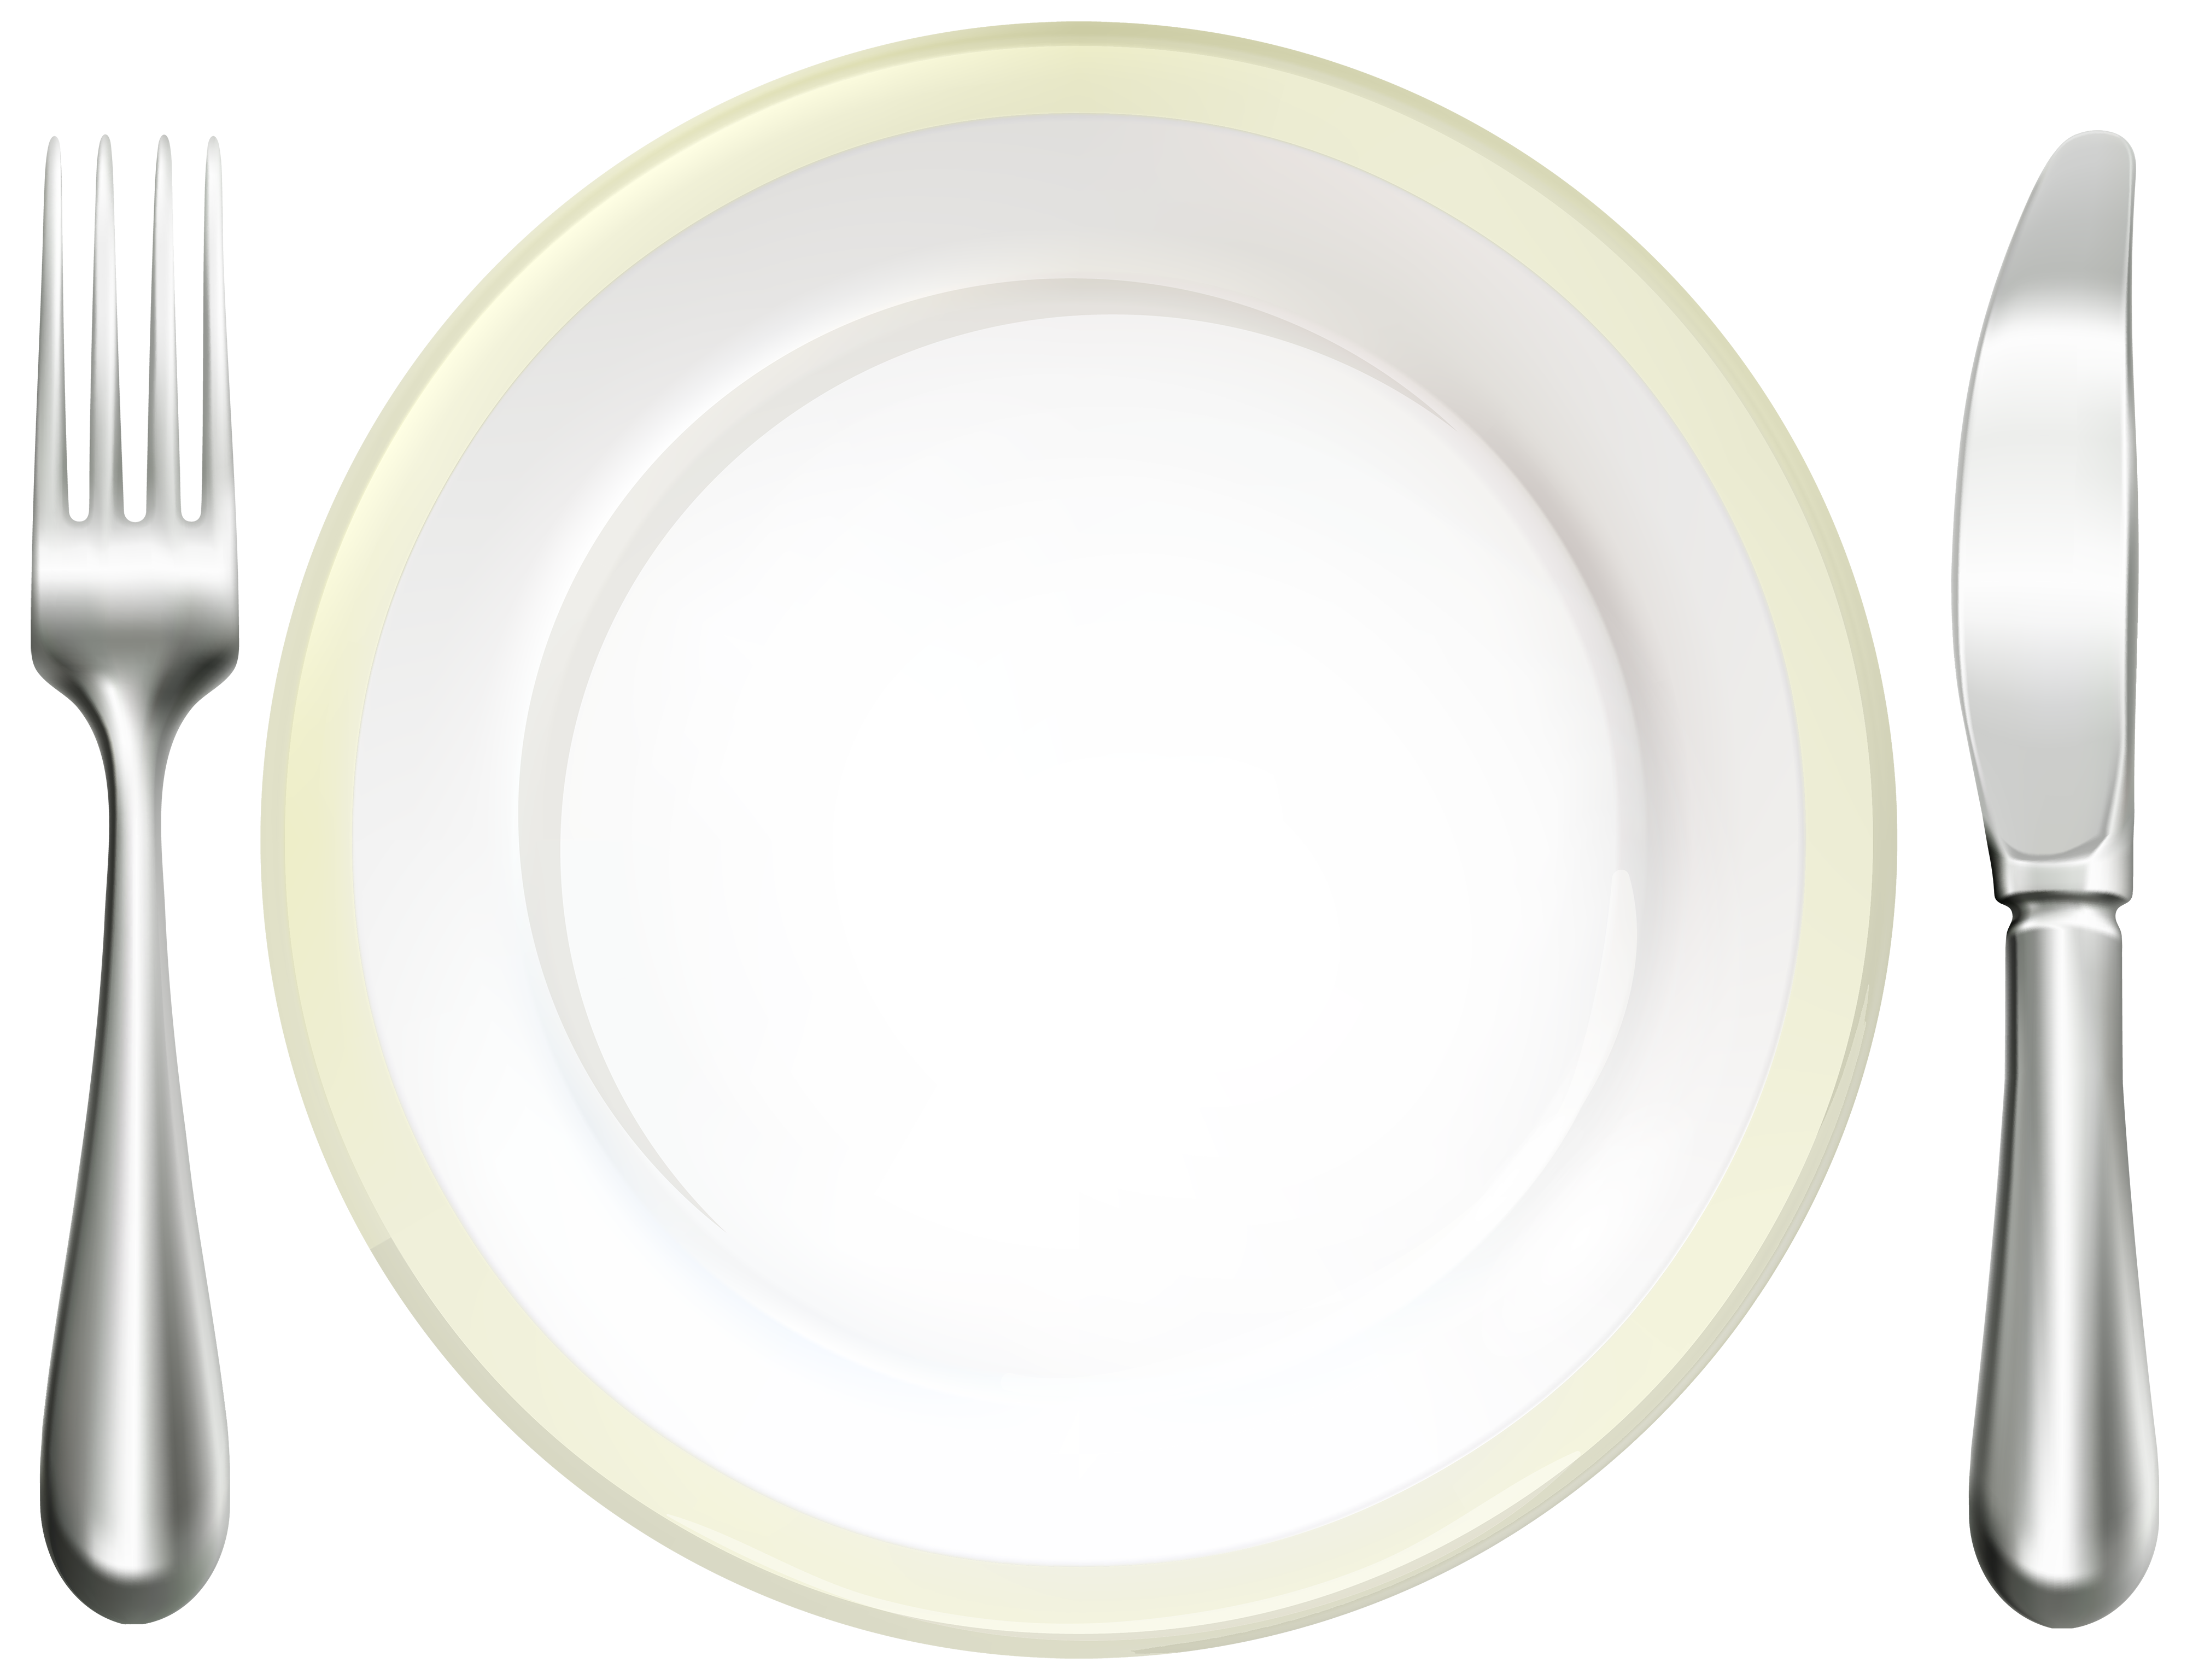 Dishes clipart plate silverware. Place setting desktop screen